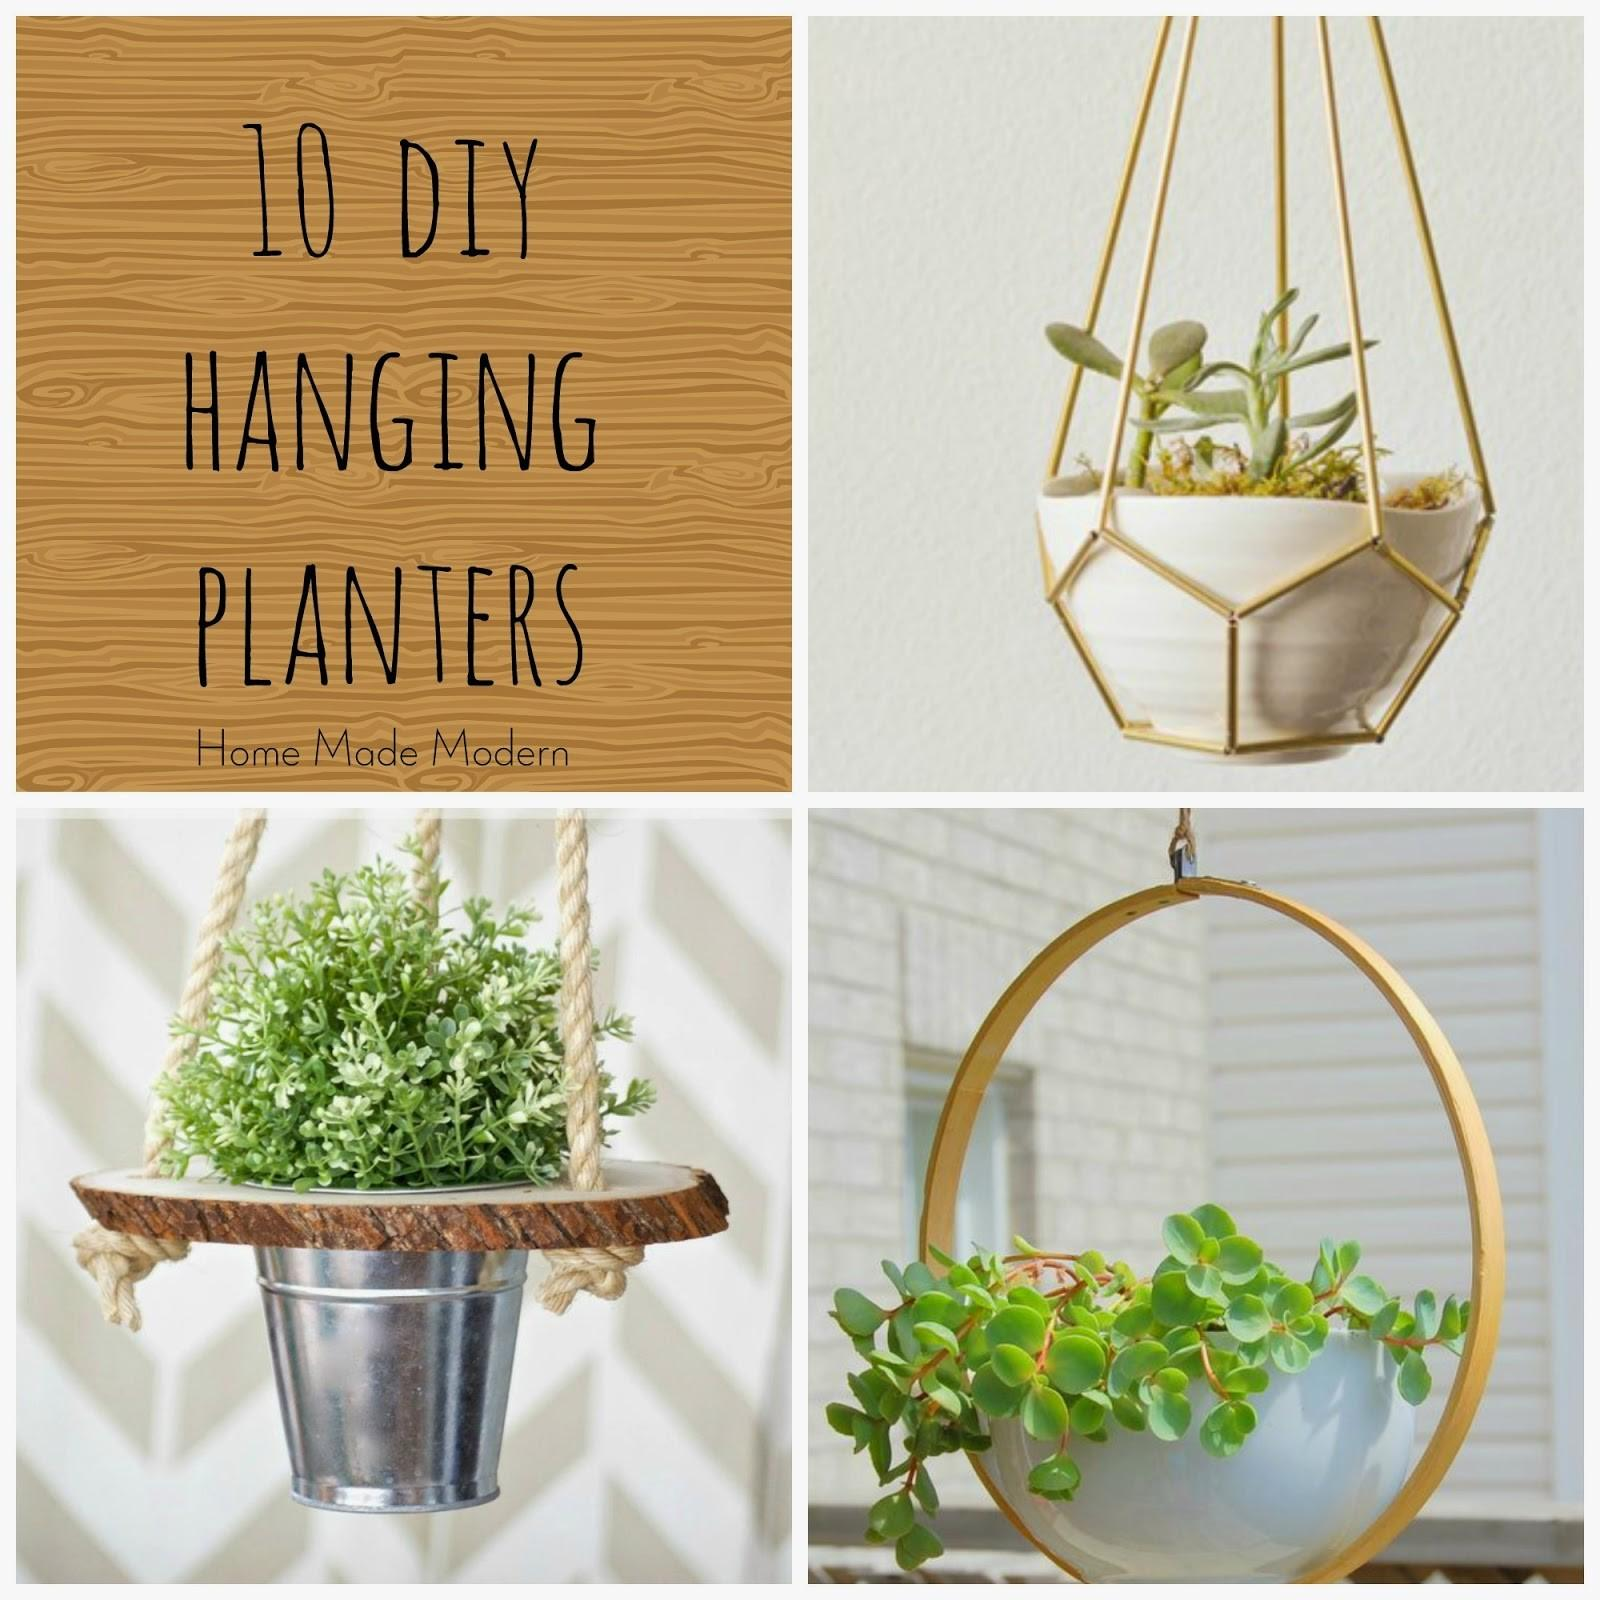 Home Made Modern Hanging Planters